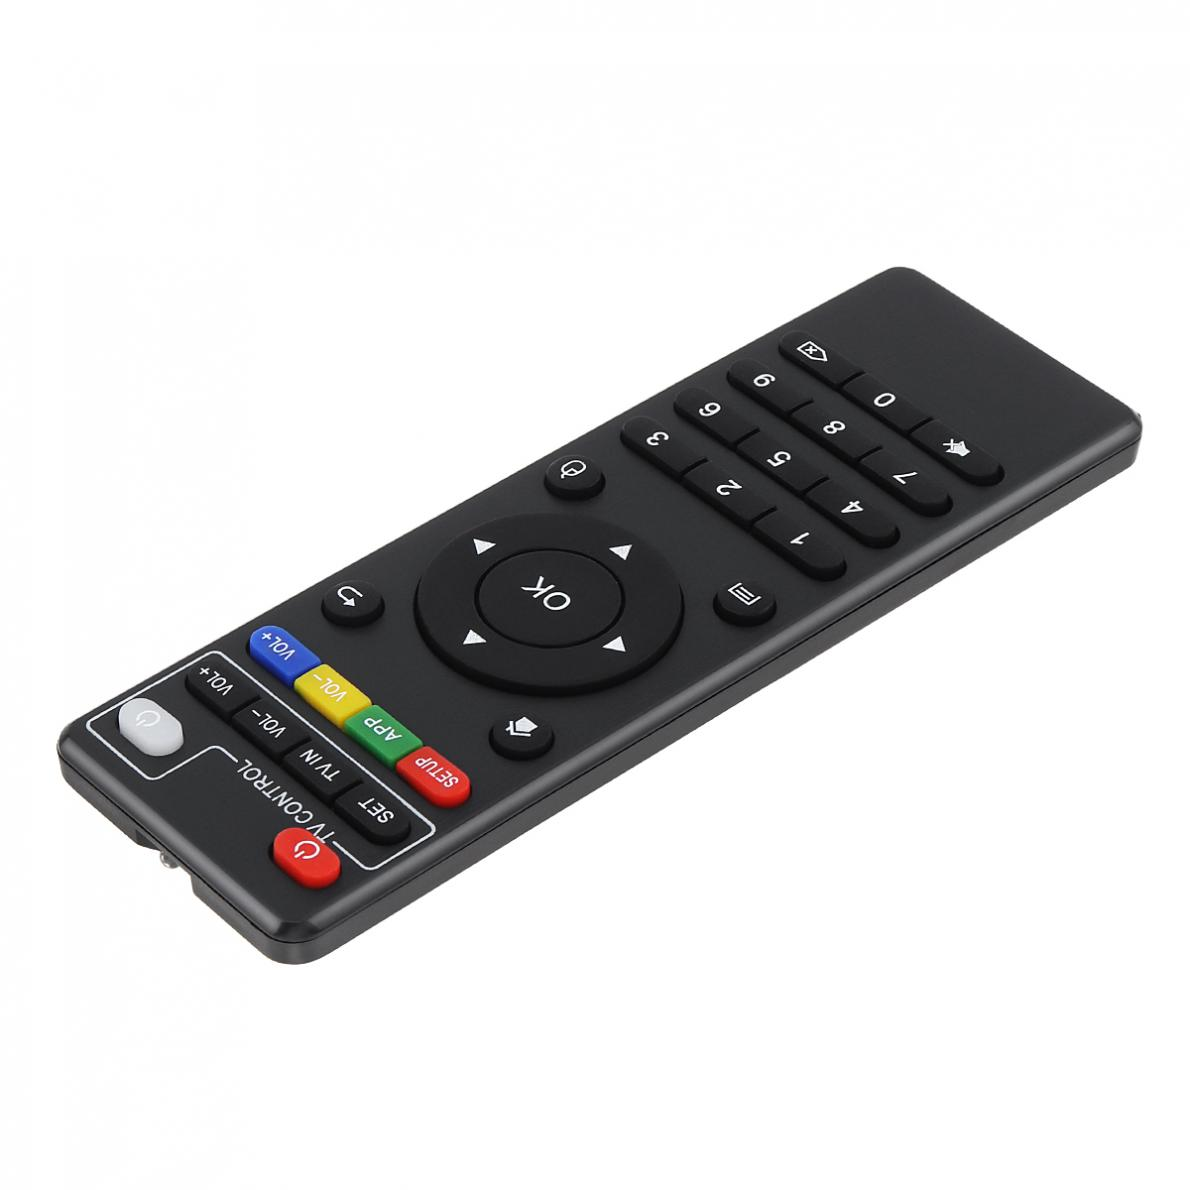 Details about Remote Control For H96 Pro / V88 / MXQ /T95 / T95X  /T96Z/X96/TX3 Android TV Box